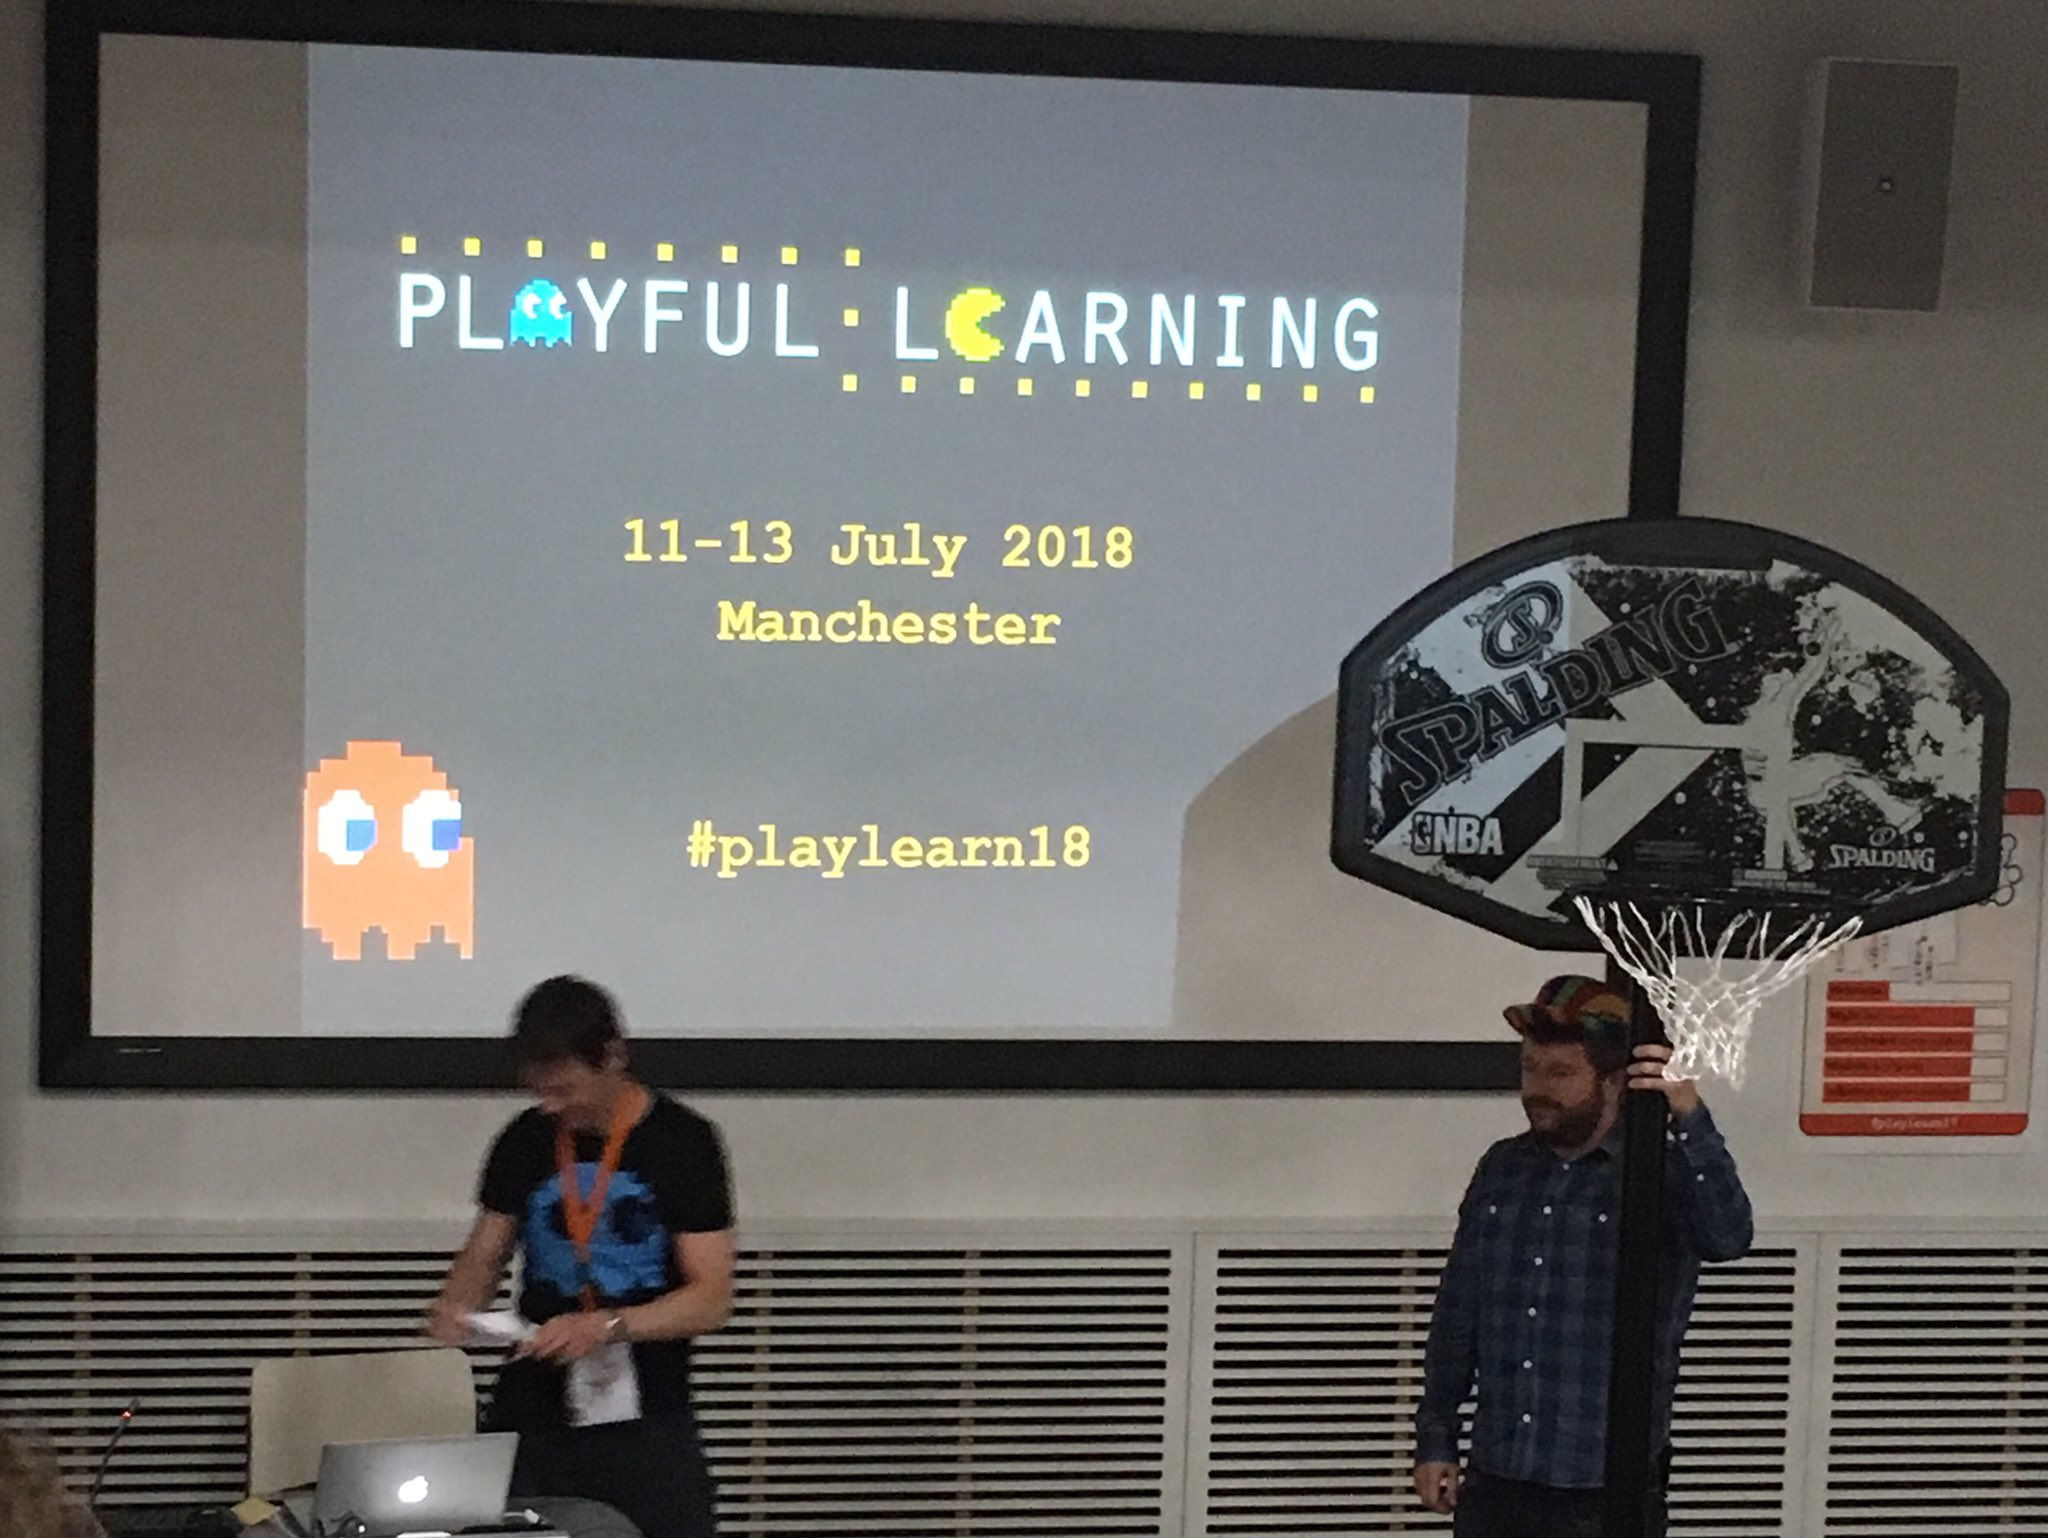 Thanks @playlearnconf for organising a great #Playlearn17 conference! Looking forward to next year! https://t.co/qIw66x6xCm